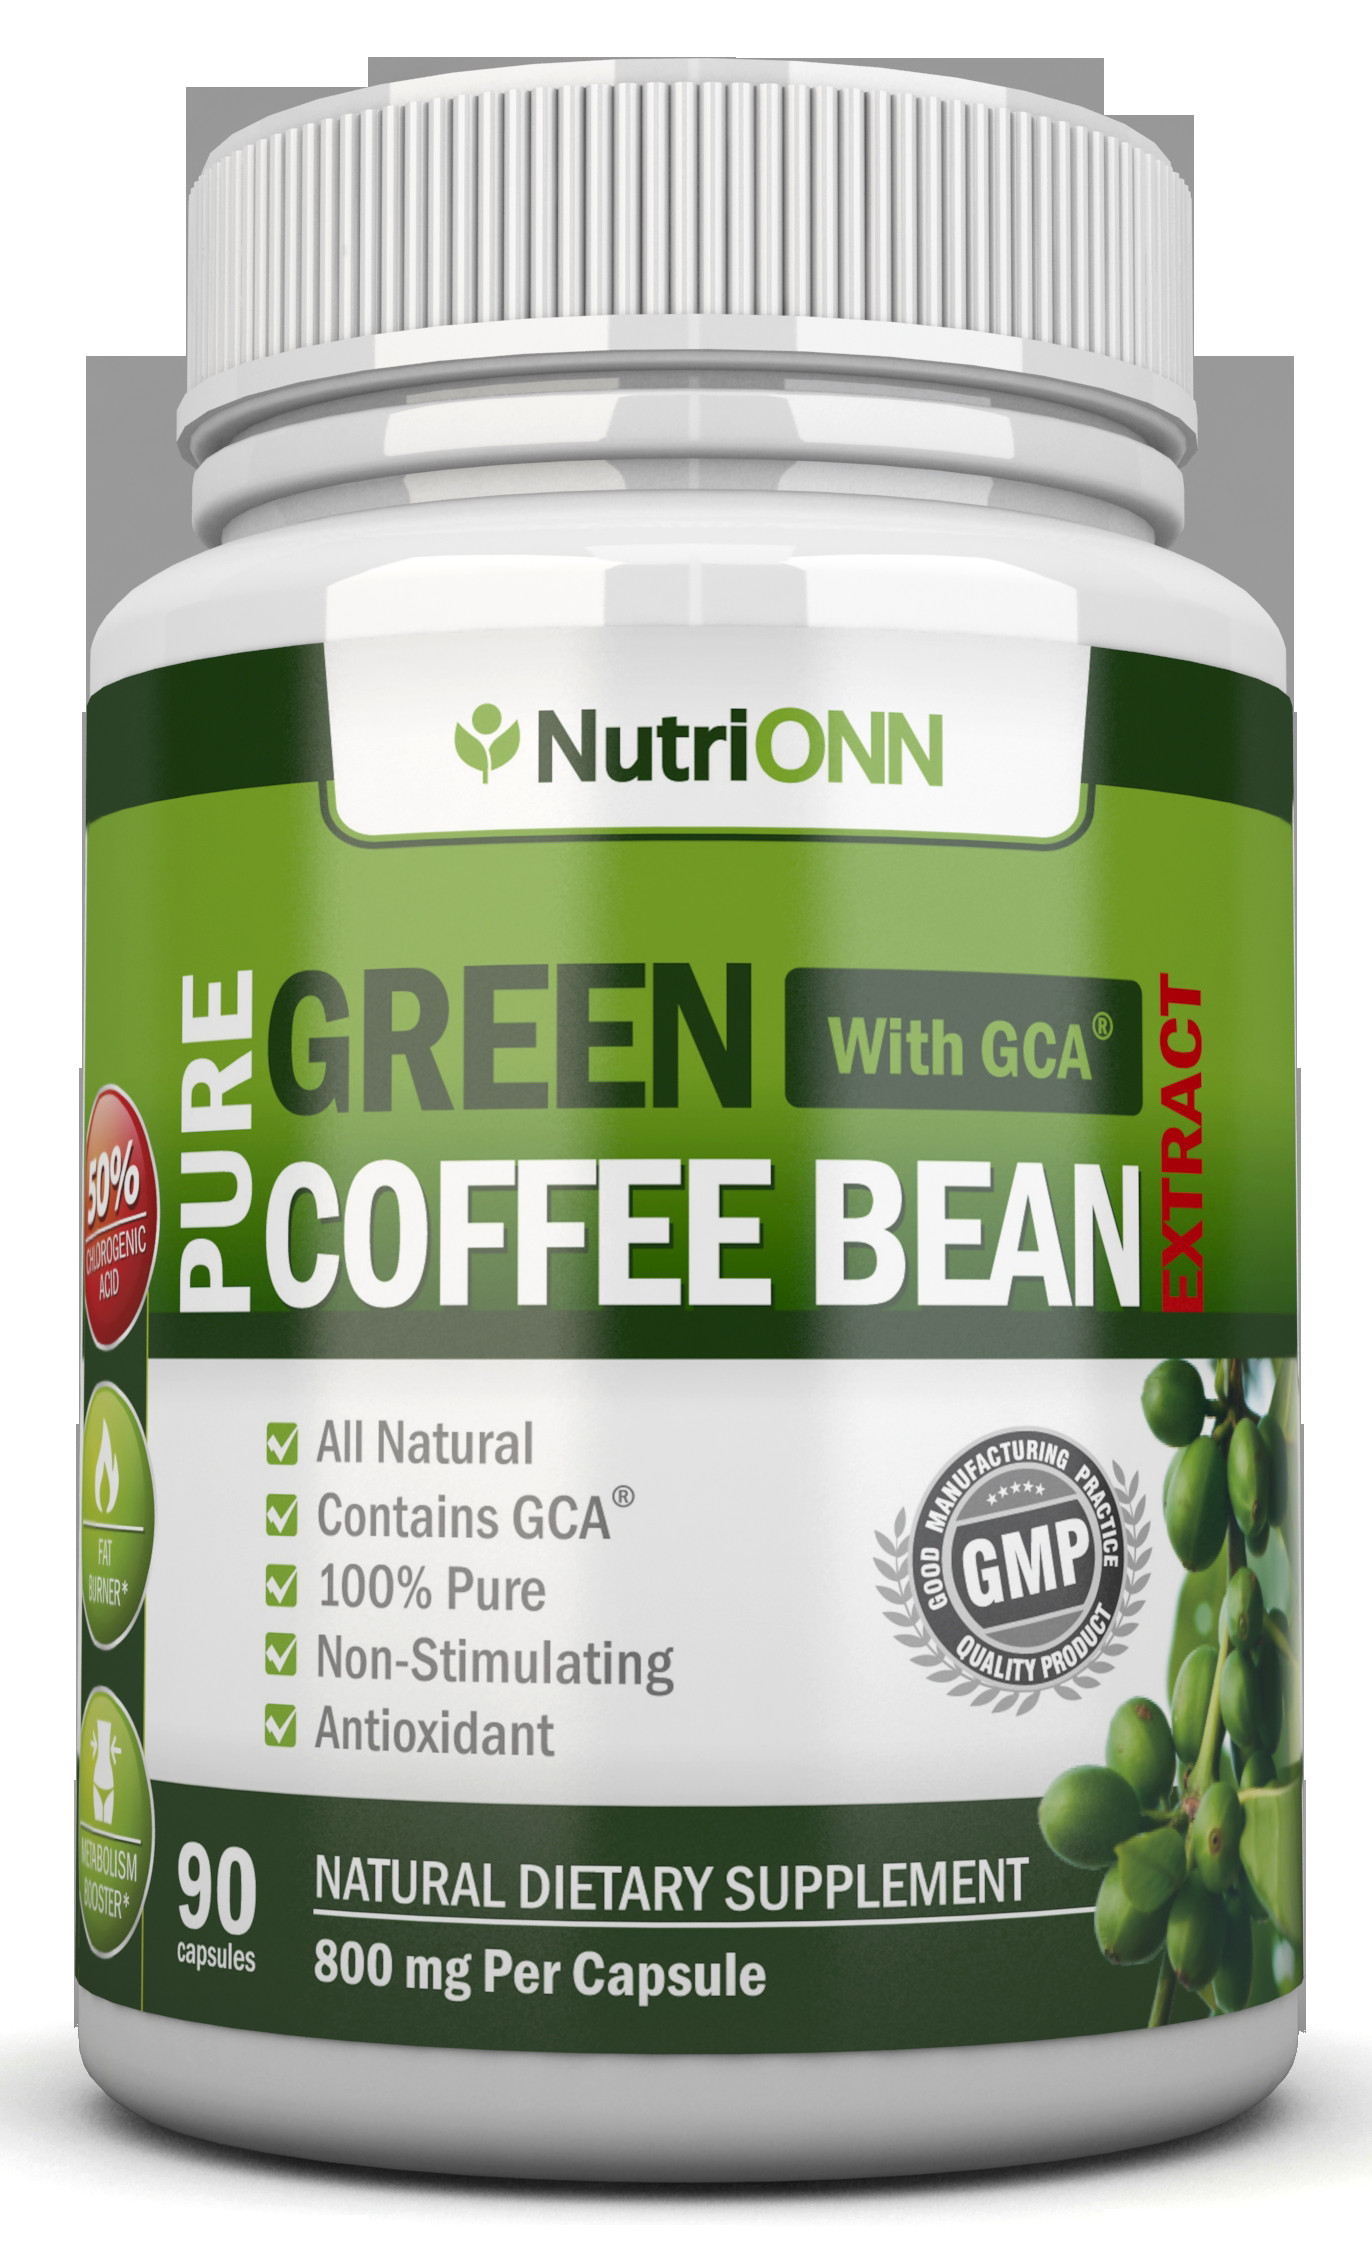 Green Coffee Bean Extract  Green Coffee Bean Extract NutriONN Supplements